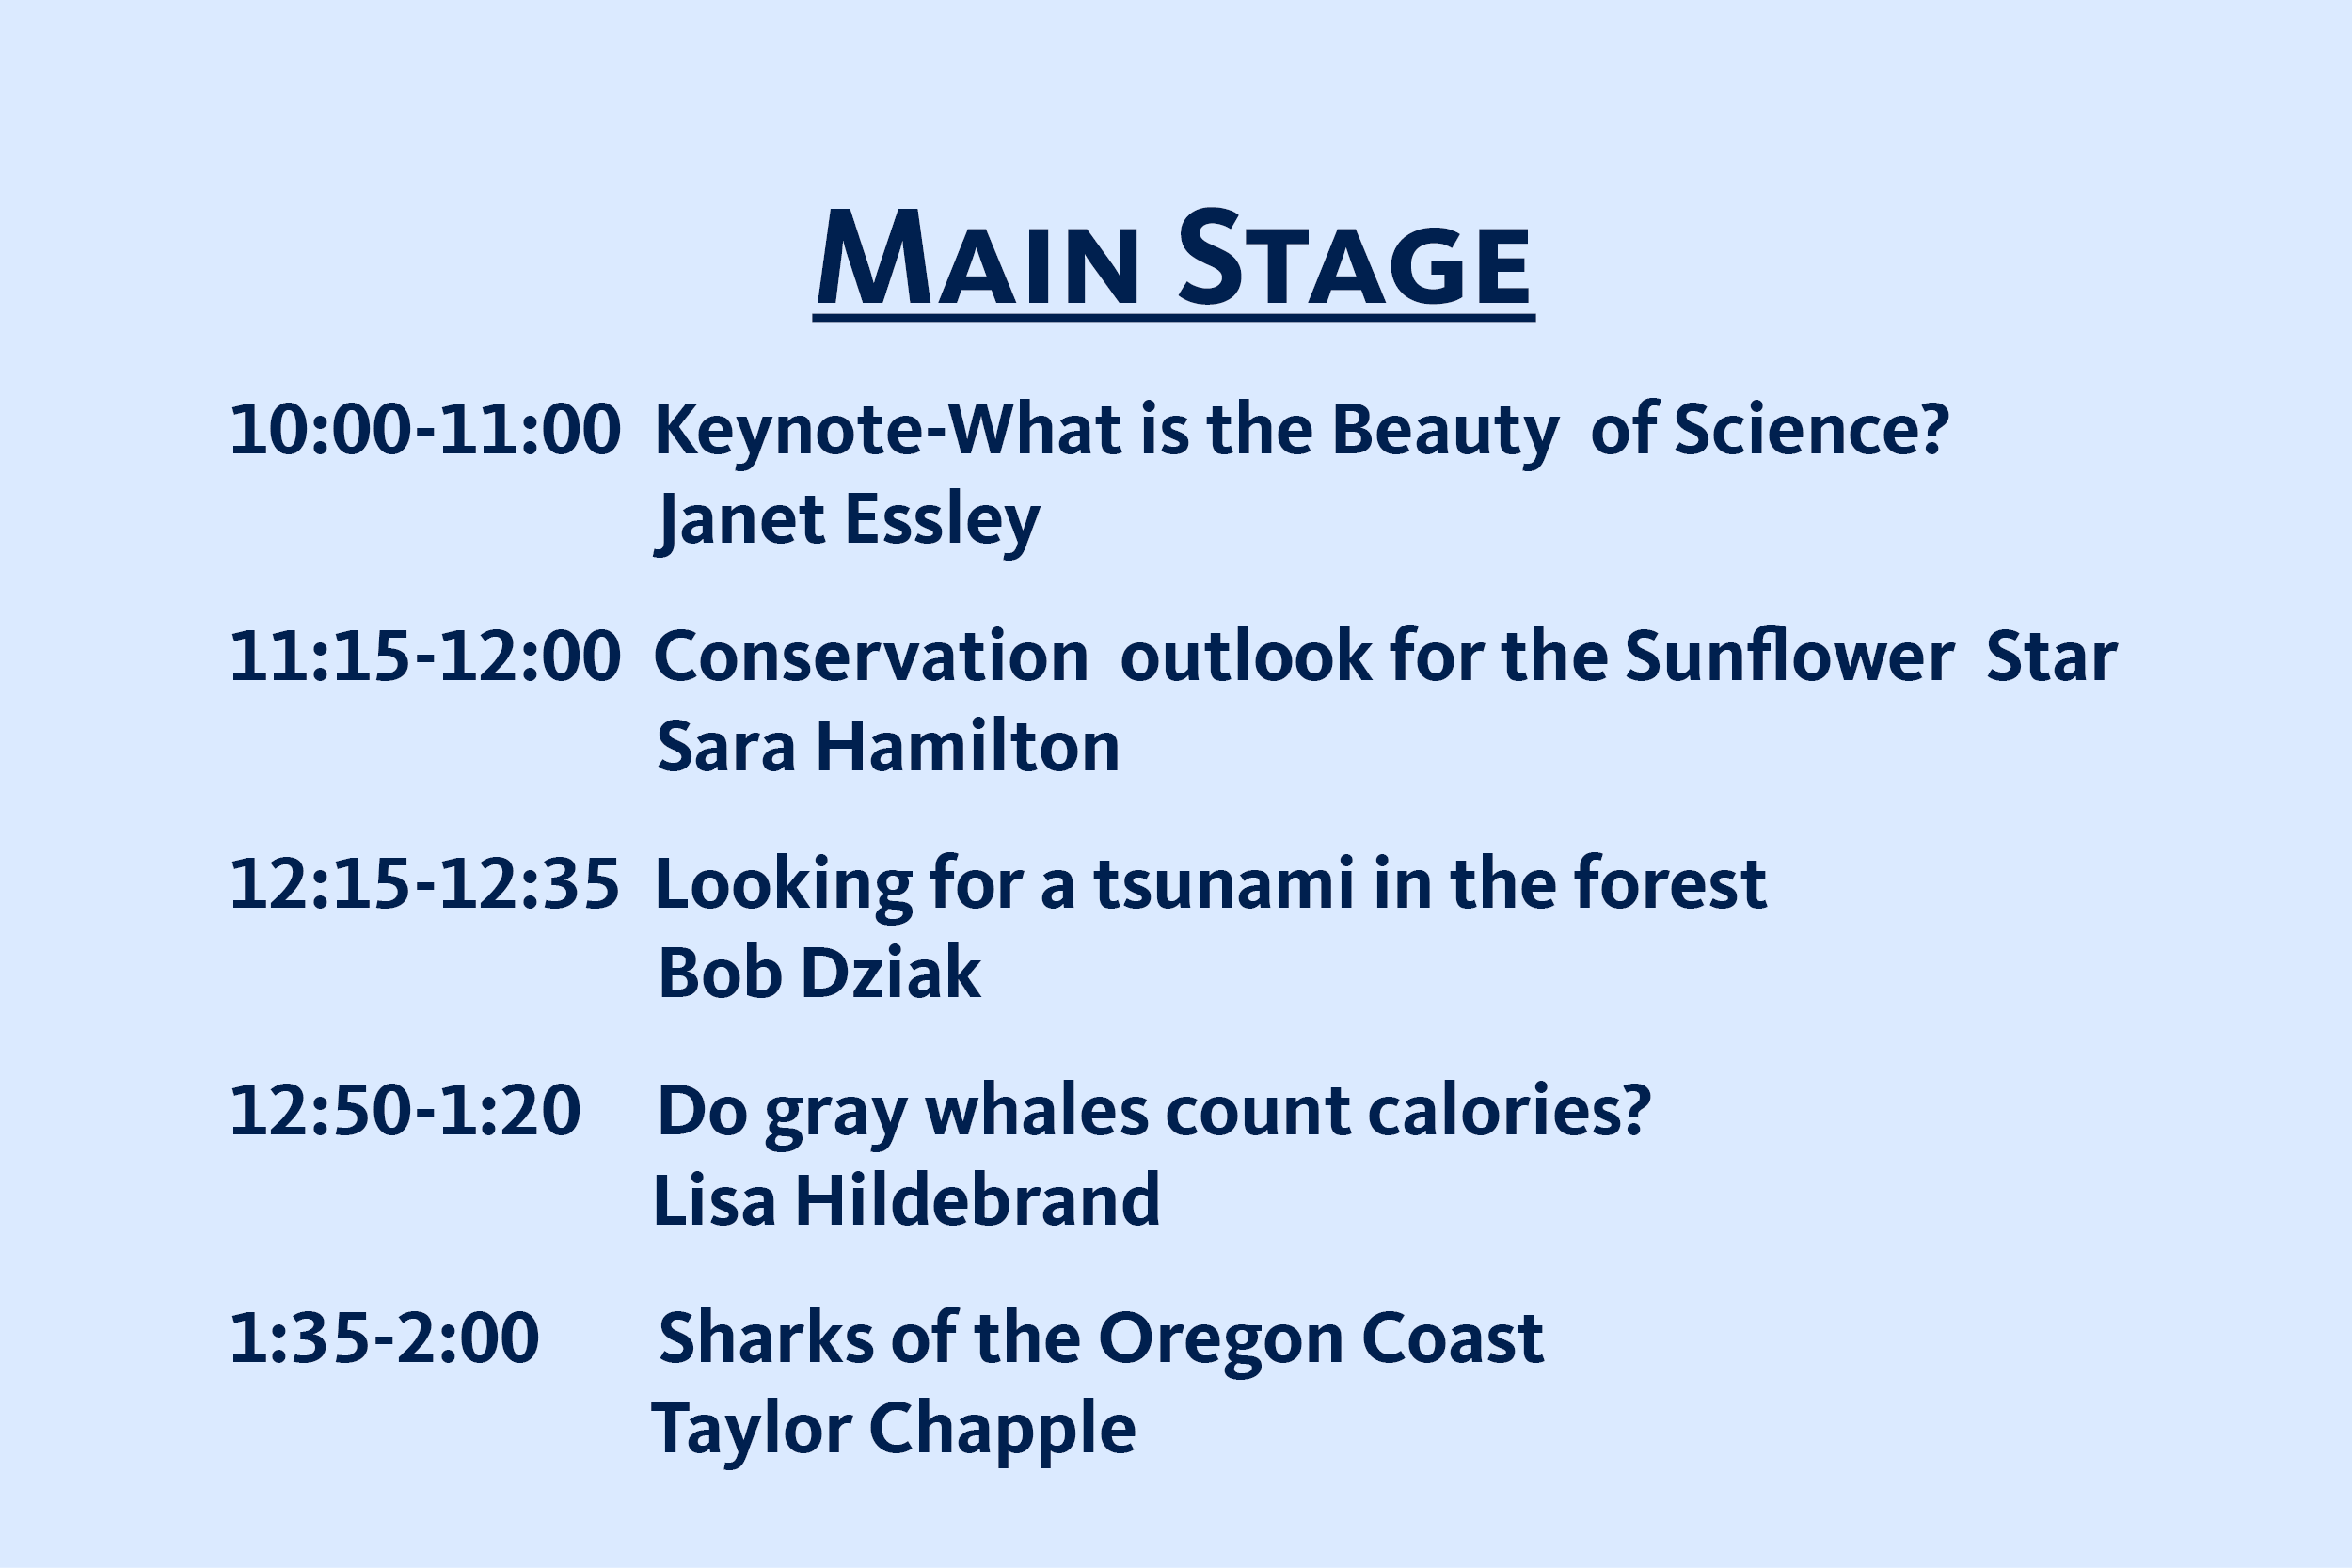 Schedule for the main stage live events at Marine Science Day